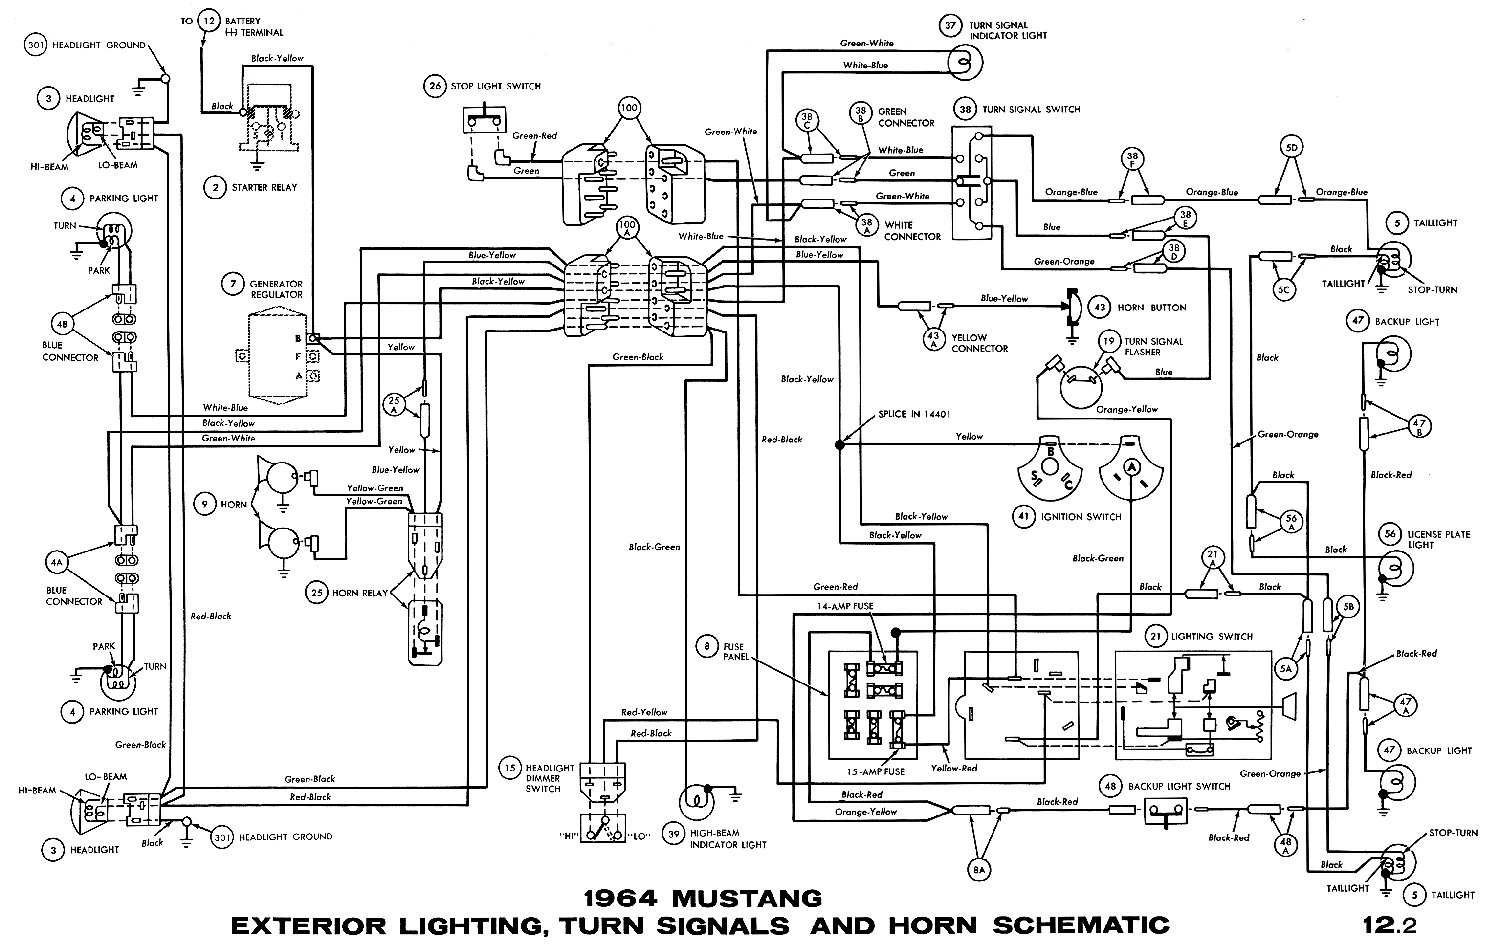 hight resolution of 1964 mustang wiring diagrams average joe restoration 1964 cadillac wiring diagram 1964 mustang wiring diagram